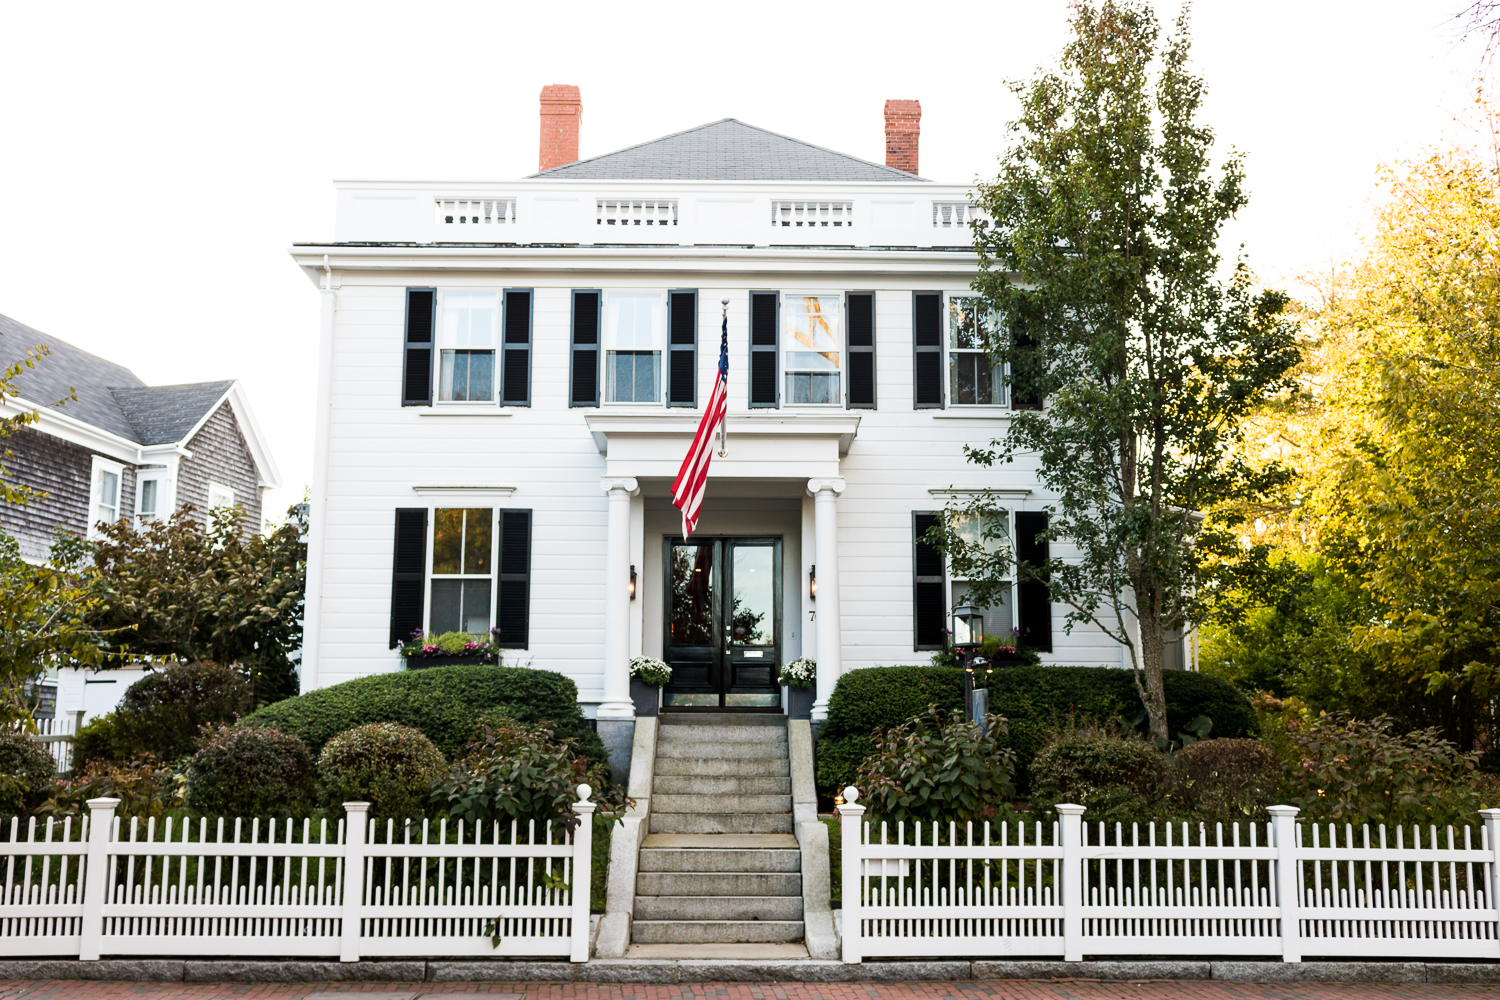 76 Main – Nantucket Boutique Hotel